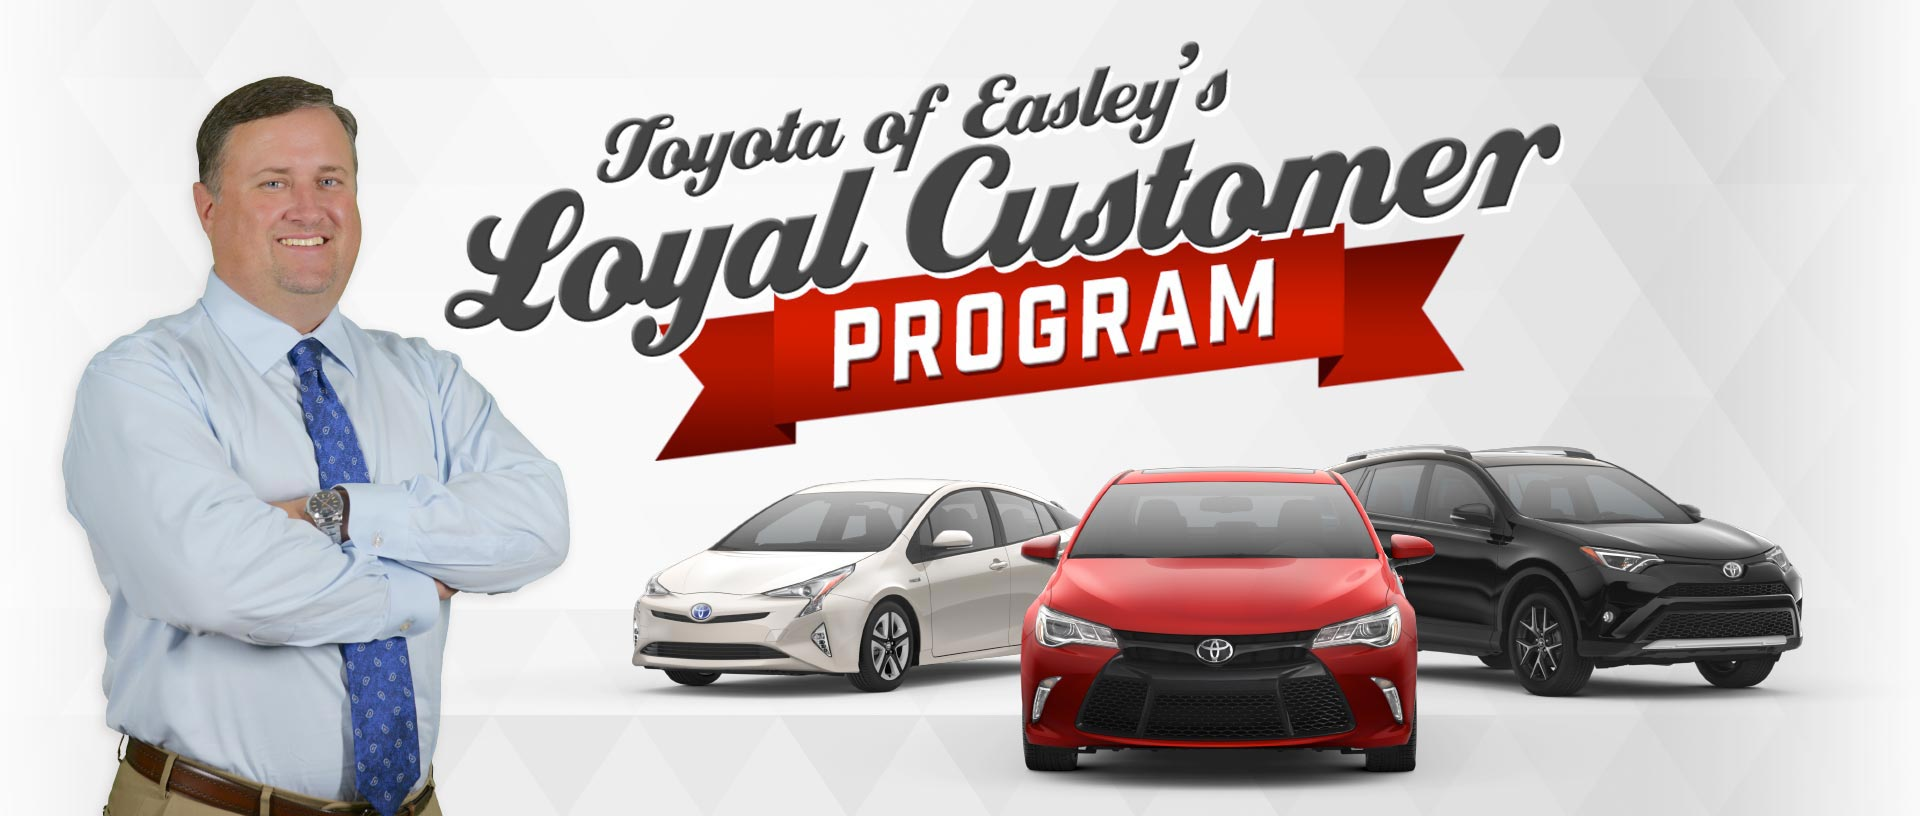 Toyota of Easley's Loyal Customer Program